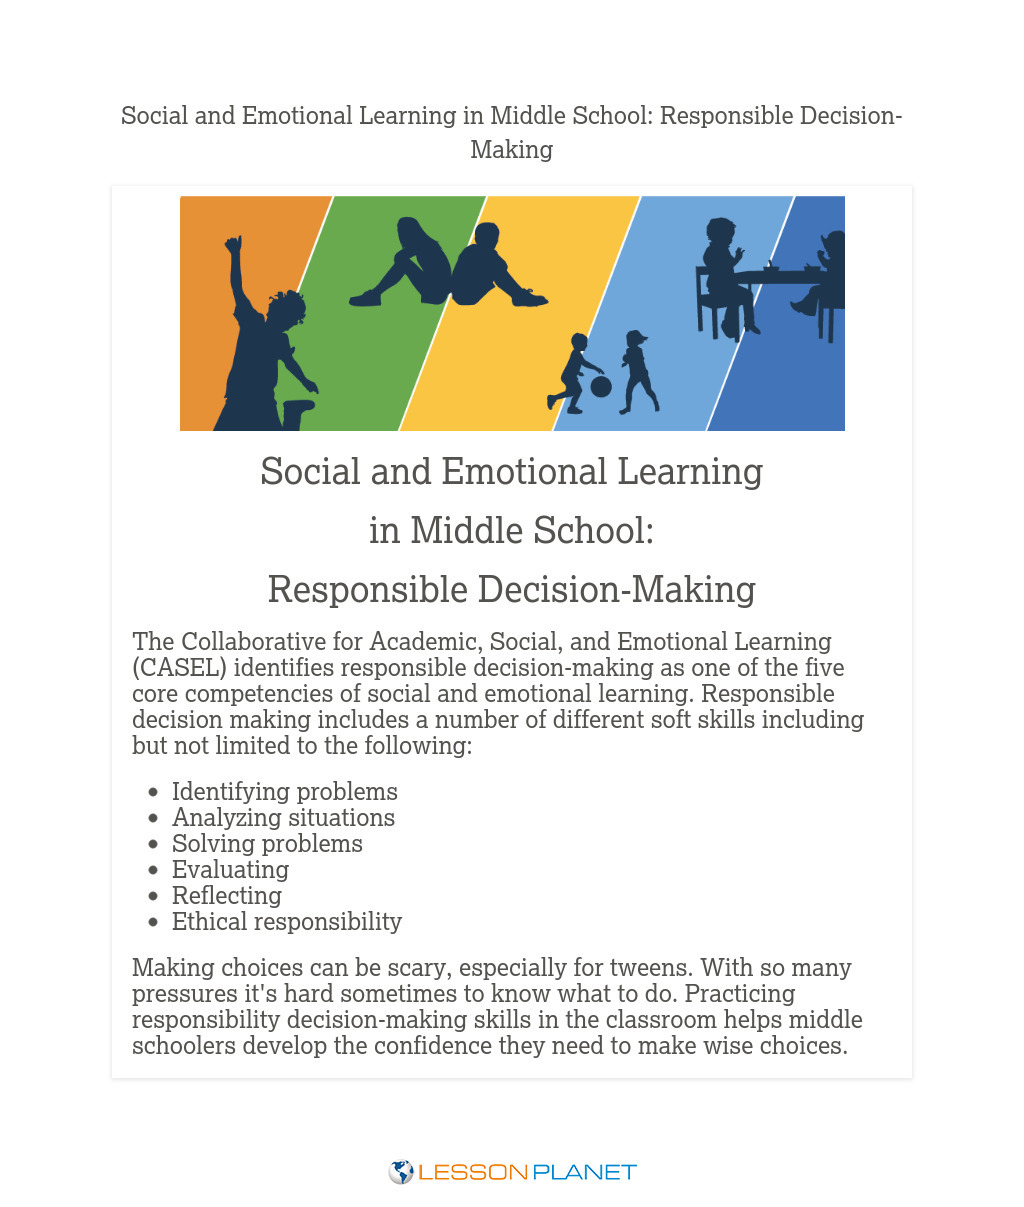 Social & Emotional Learning in Middle School: Responsible Decision-Making